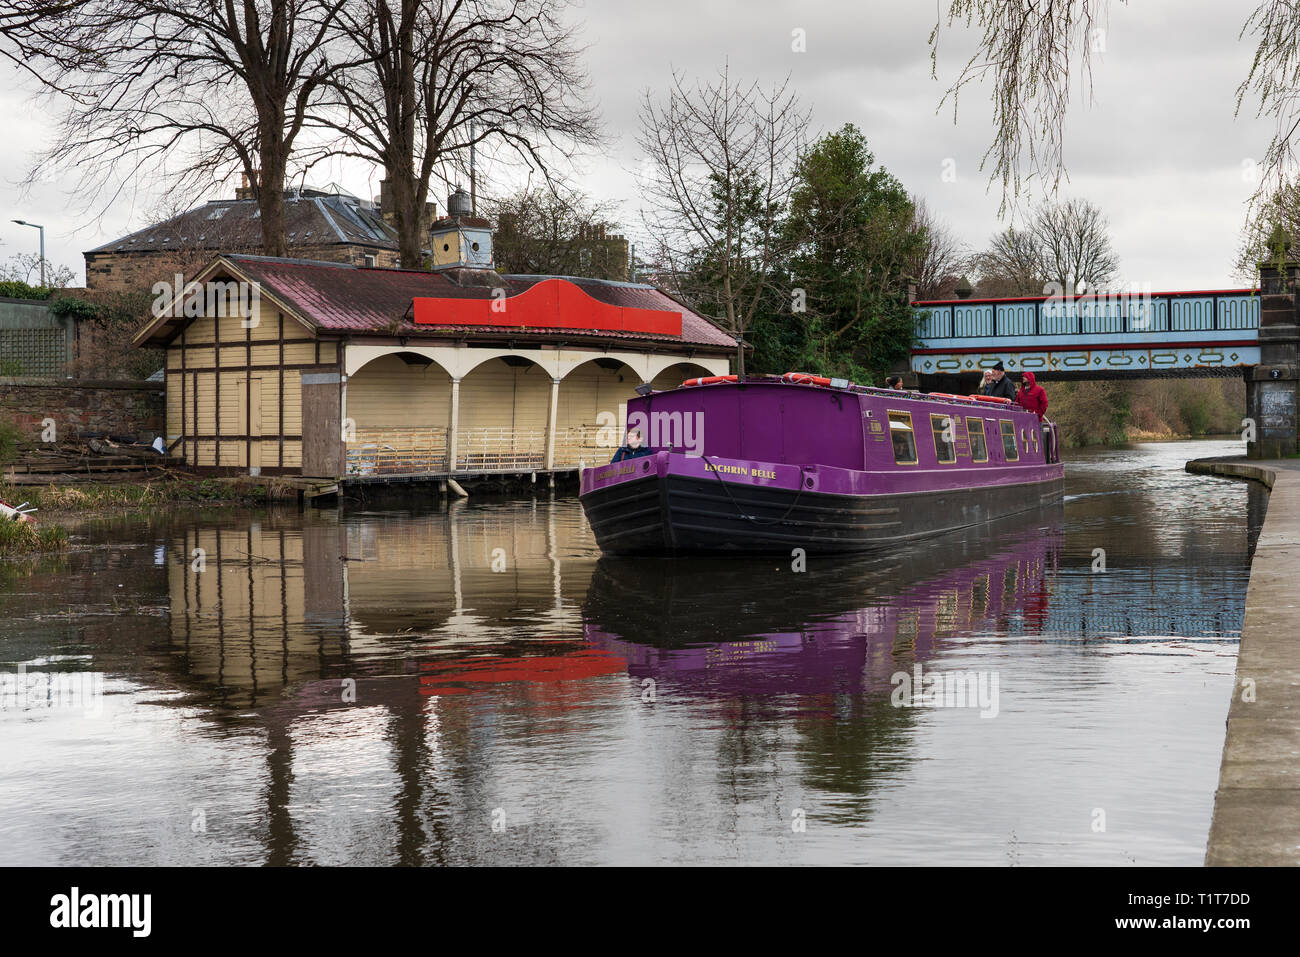 The Union Canal with narrowboat and Edinburgh Canal Society boathouse in early spring  in Edinburgh, Scotland, UK - Stock Image